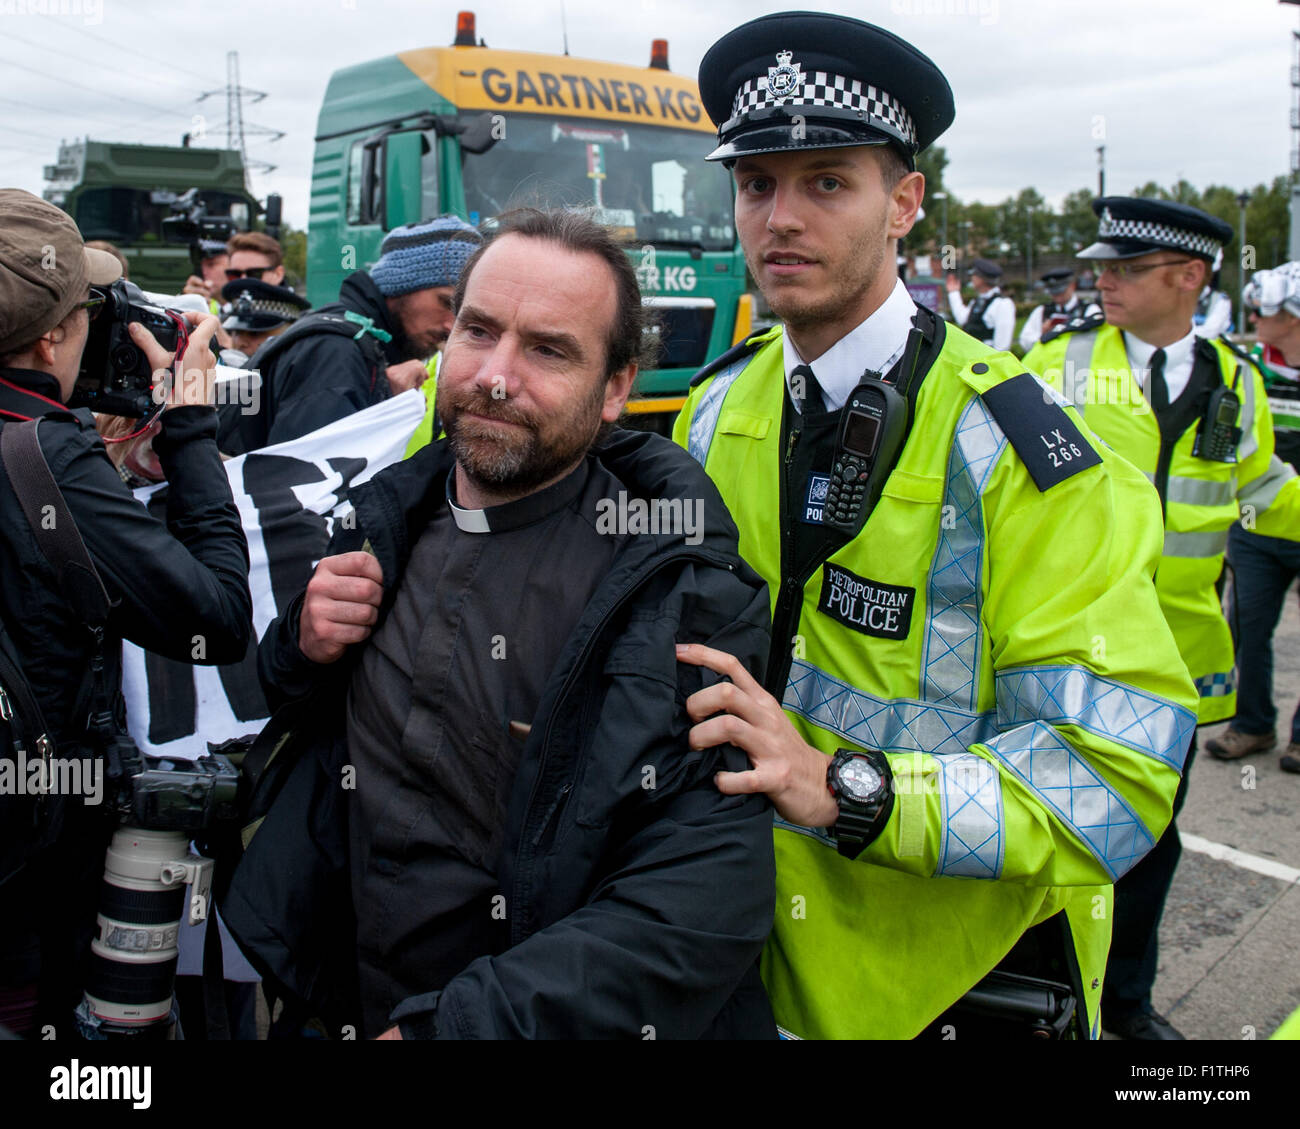 London, UK. 7th September, 2015. Police remove a vicar from the blockade during a protest against the DSEI, one Stock Photo